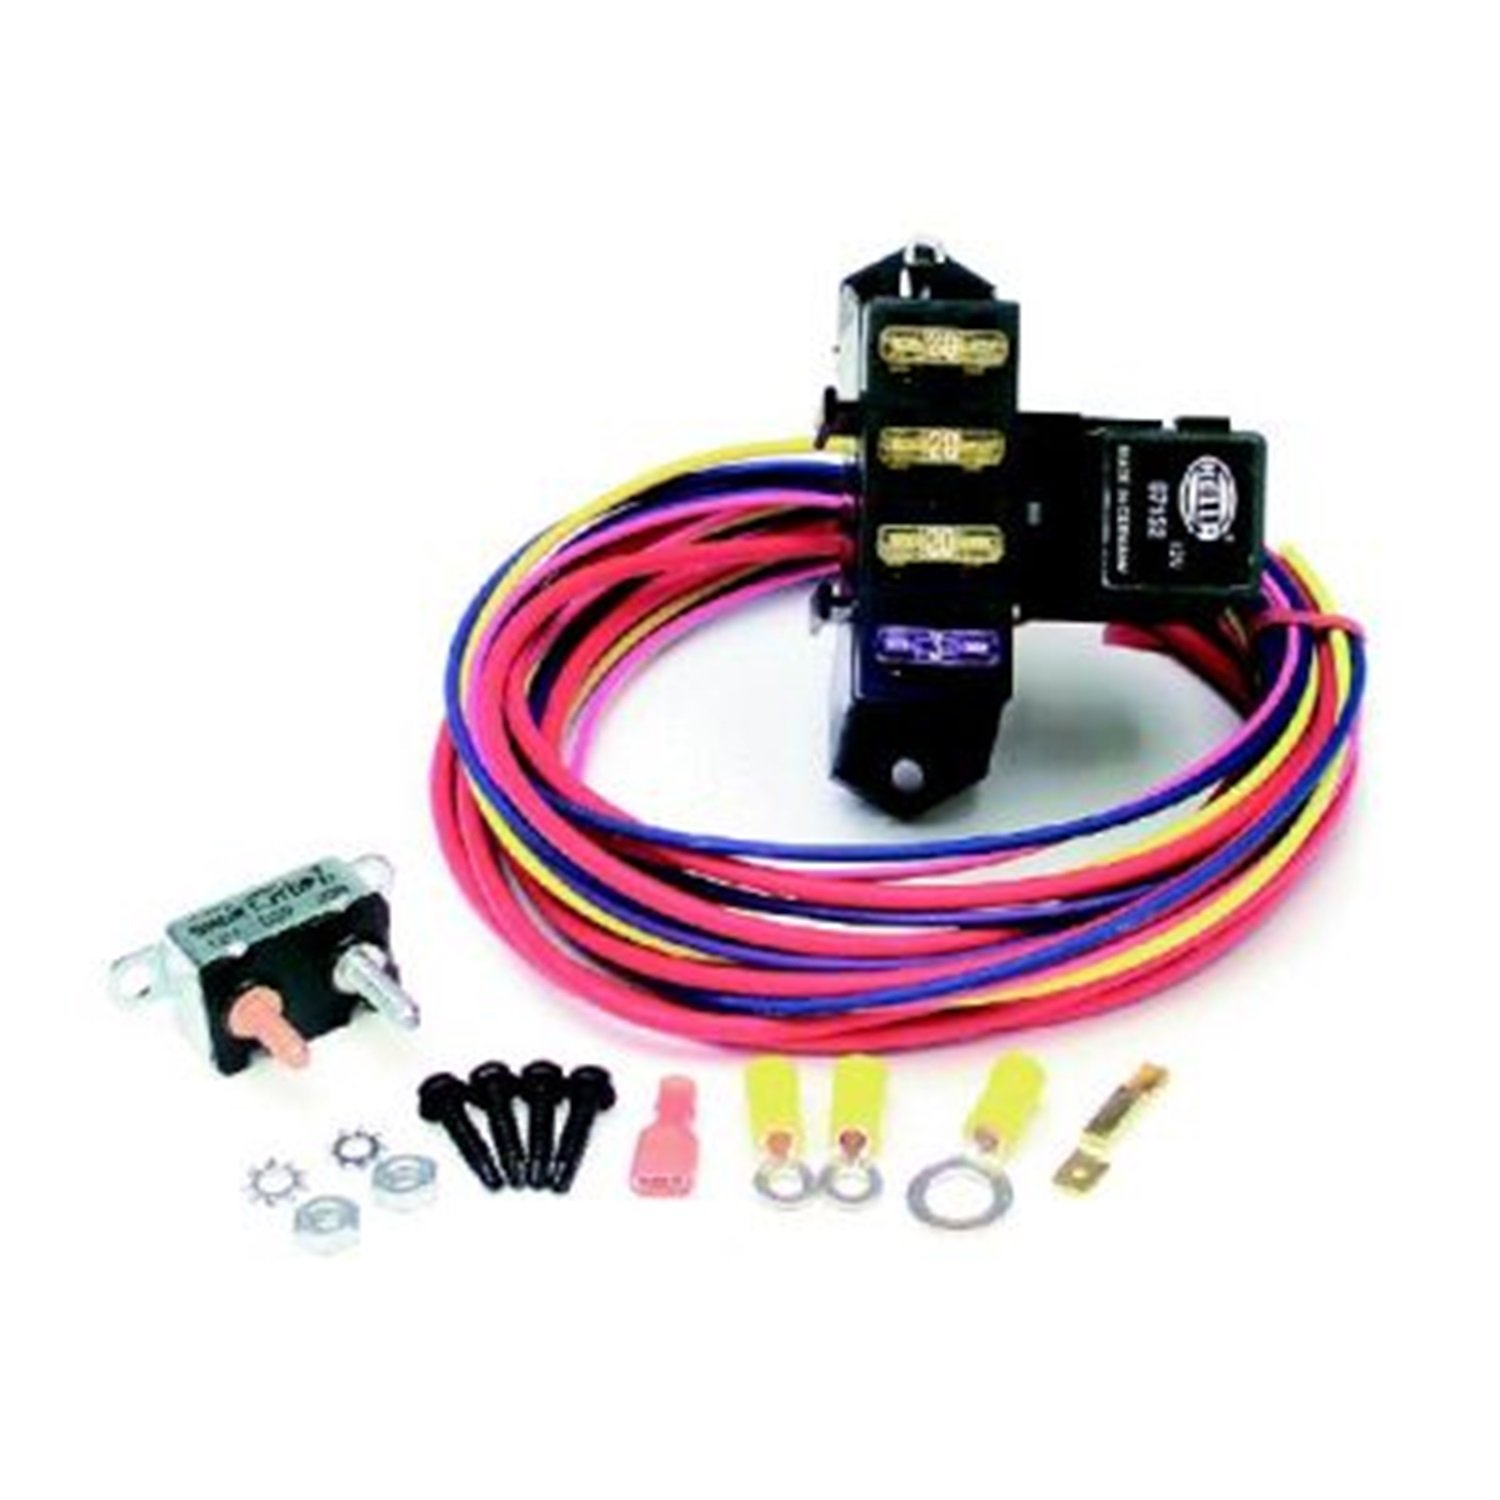 71KC1UcHI2L._SL1500_ amazon com painless 70113 automotive painless wiring fuse block diagram at eliteediting.co